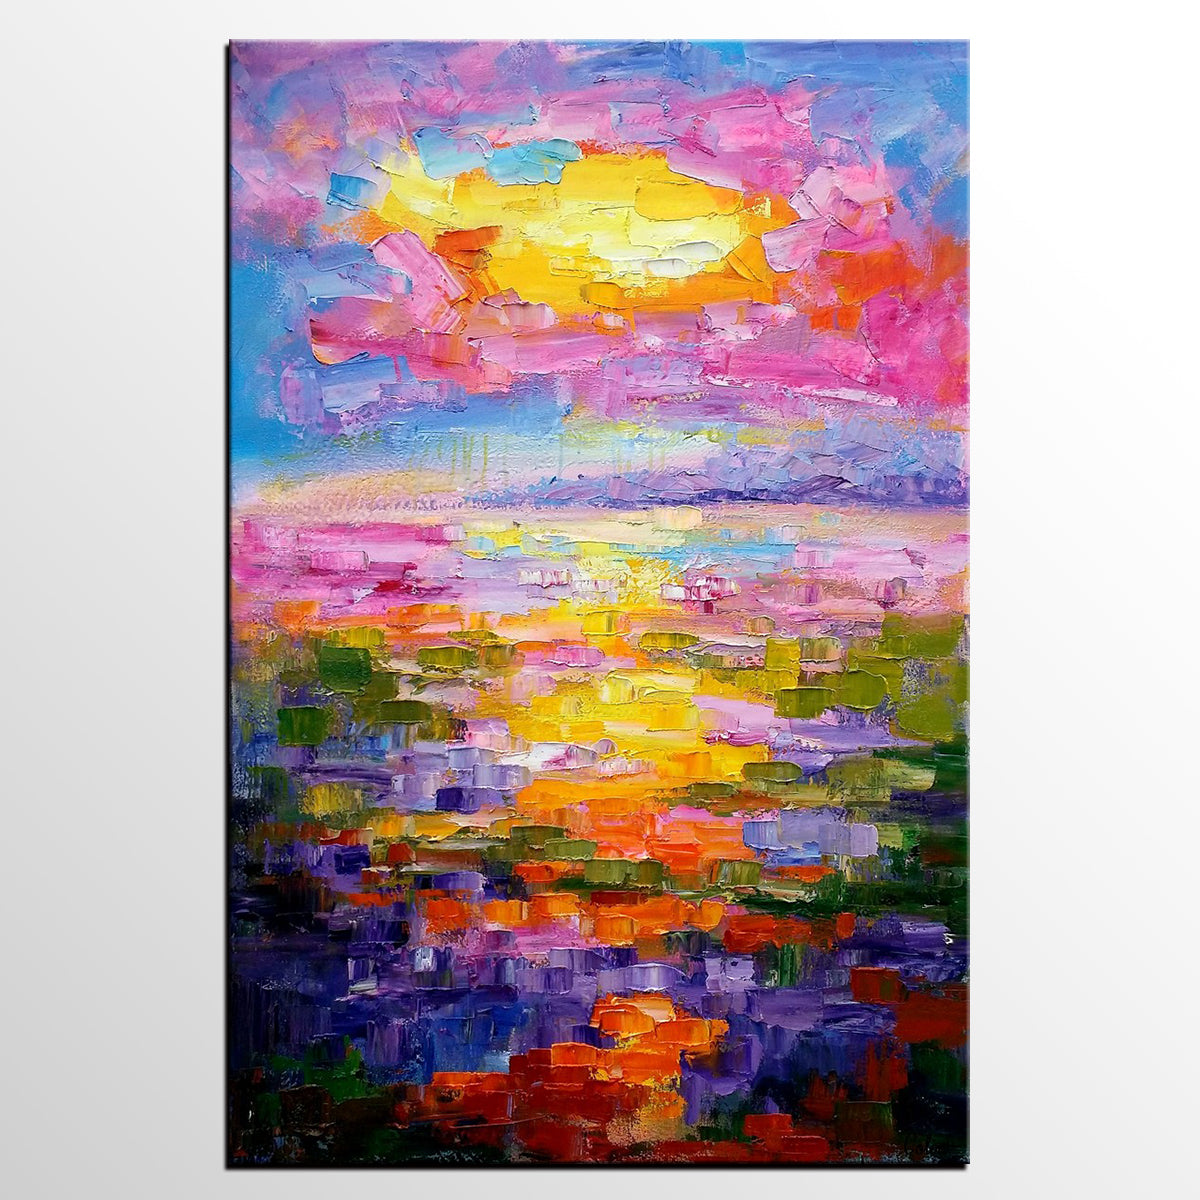 Large Paintings For Living Room Living Room Wall Art Large Painting Abstract Landscape Painting